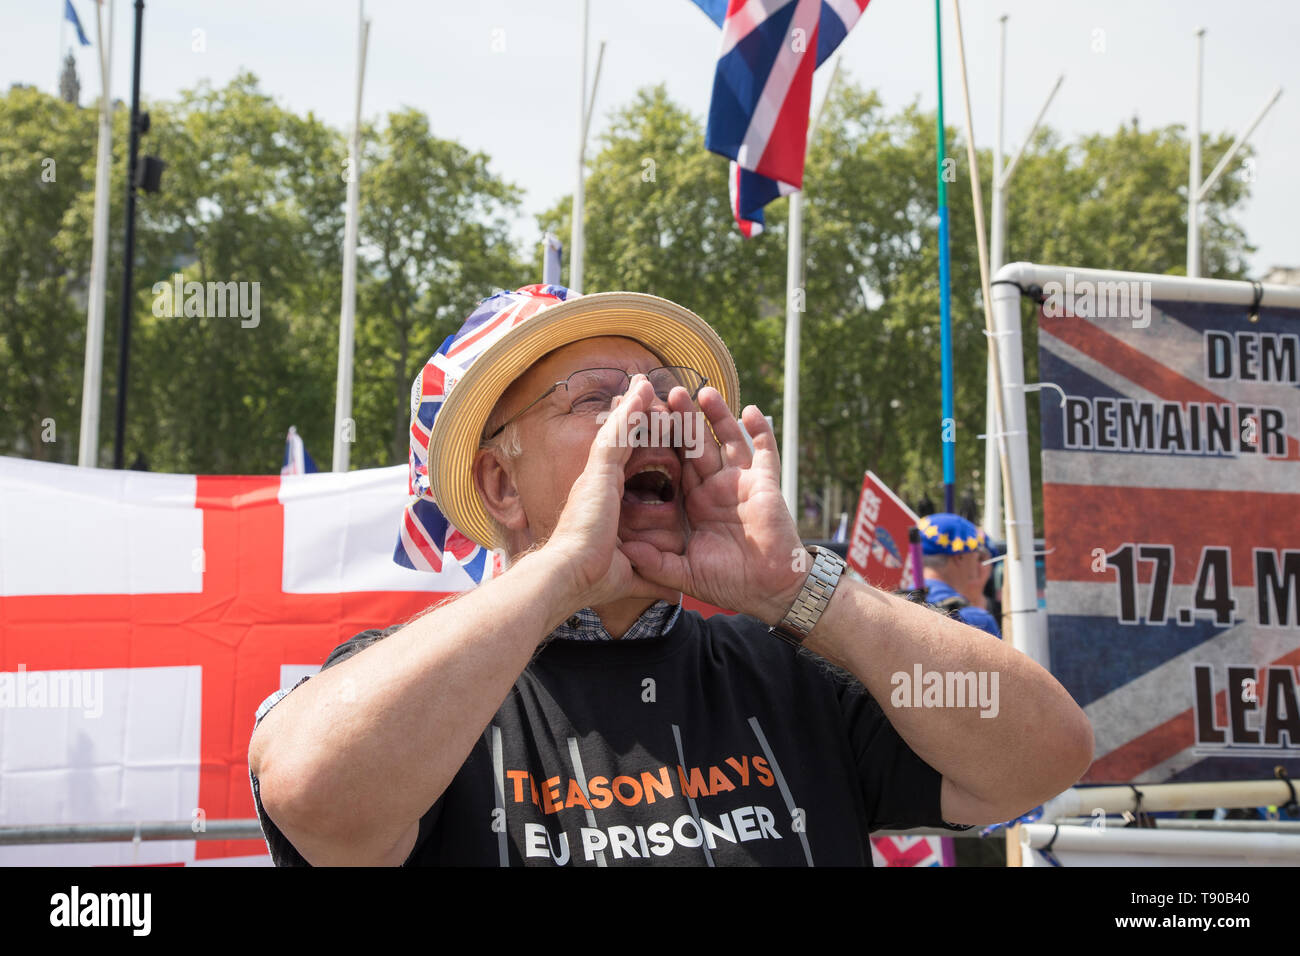 London, UK. 15 May 2019. Pro-leavers and pro-remainers demonstrators debate outside the House of Parliament, Westminster.  Theresa May announces fresh vote on Brexit deal. The Prime Minister faces Question Time in the Commons. - Stock Image